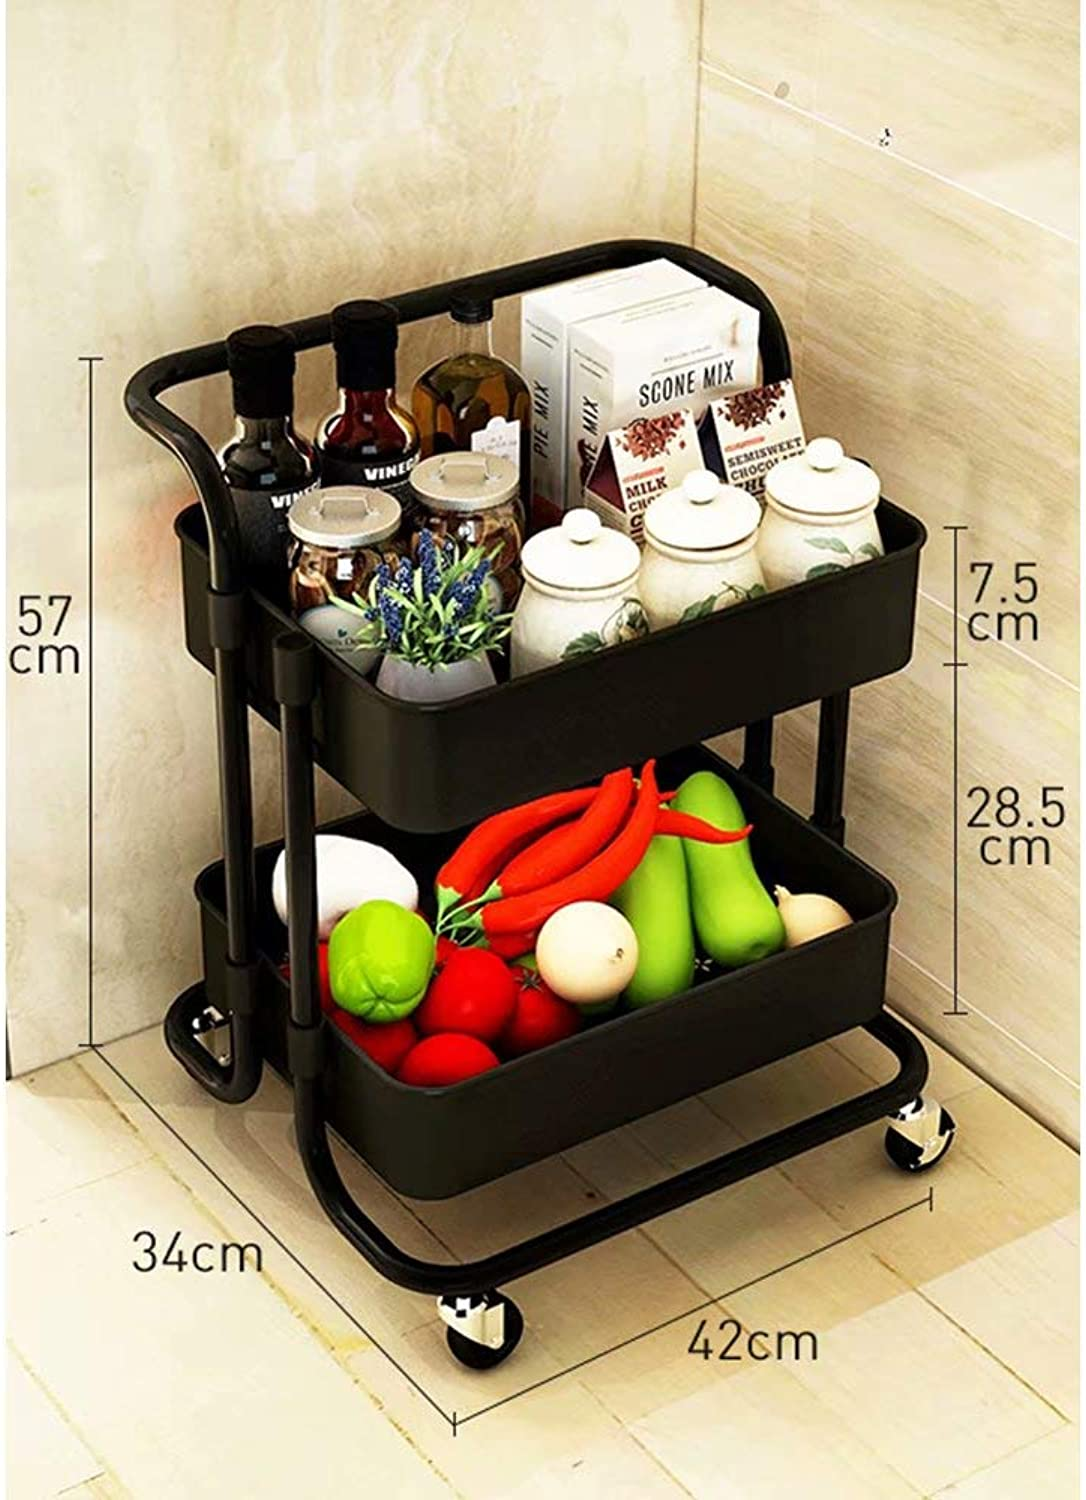 Chrome-Plated Kitchen Trolley on Wheels with 2 3 Tiered Storage Baskets